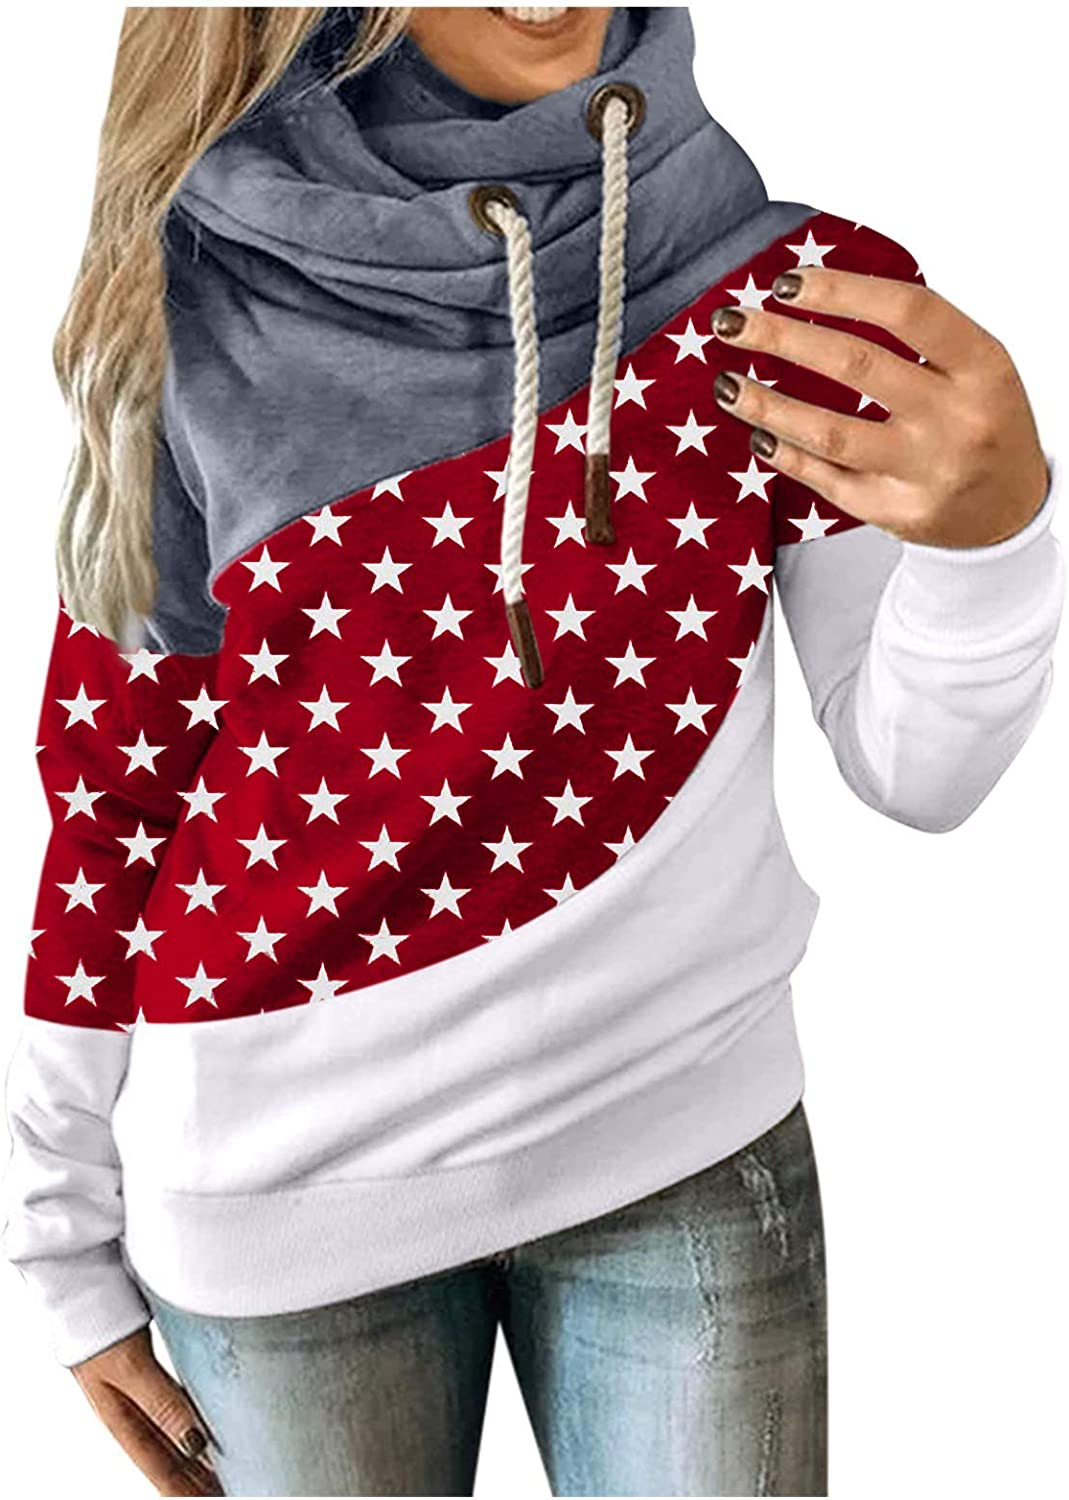 Hotkey Women Autumn Winter Hoodies Printing Color Courier shipping free shipping 5% OFF Stars Contrast